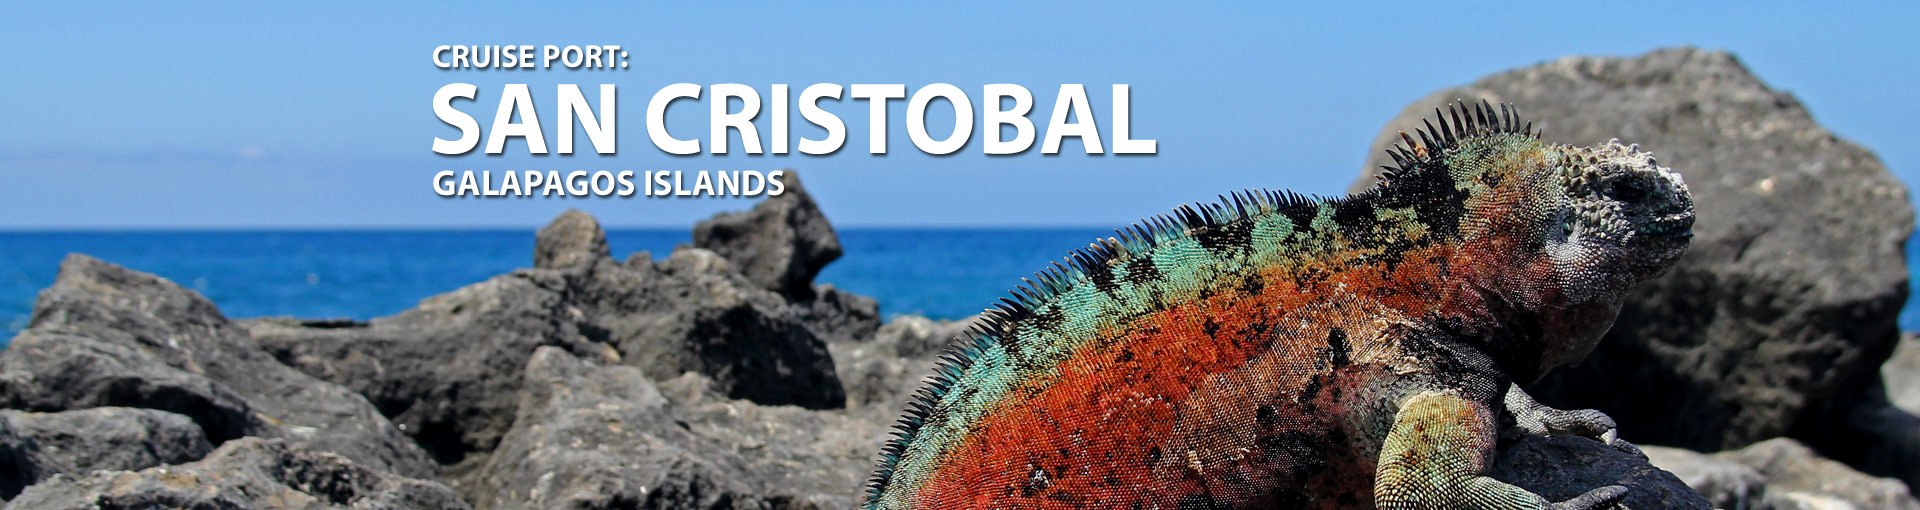 Cruises from San Cristobal, Galapagos Islands